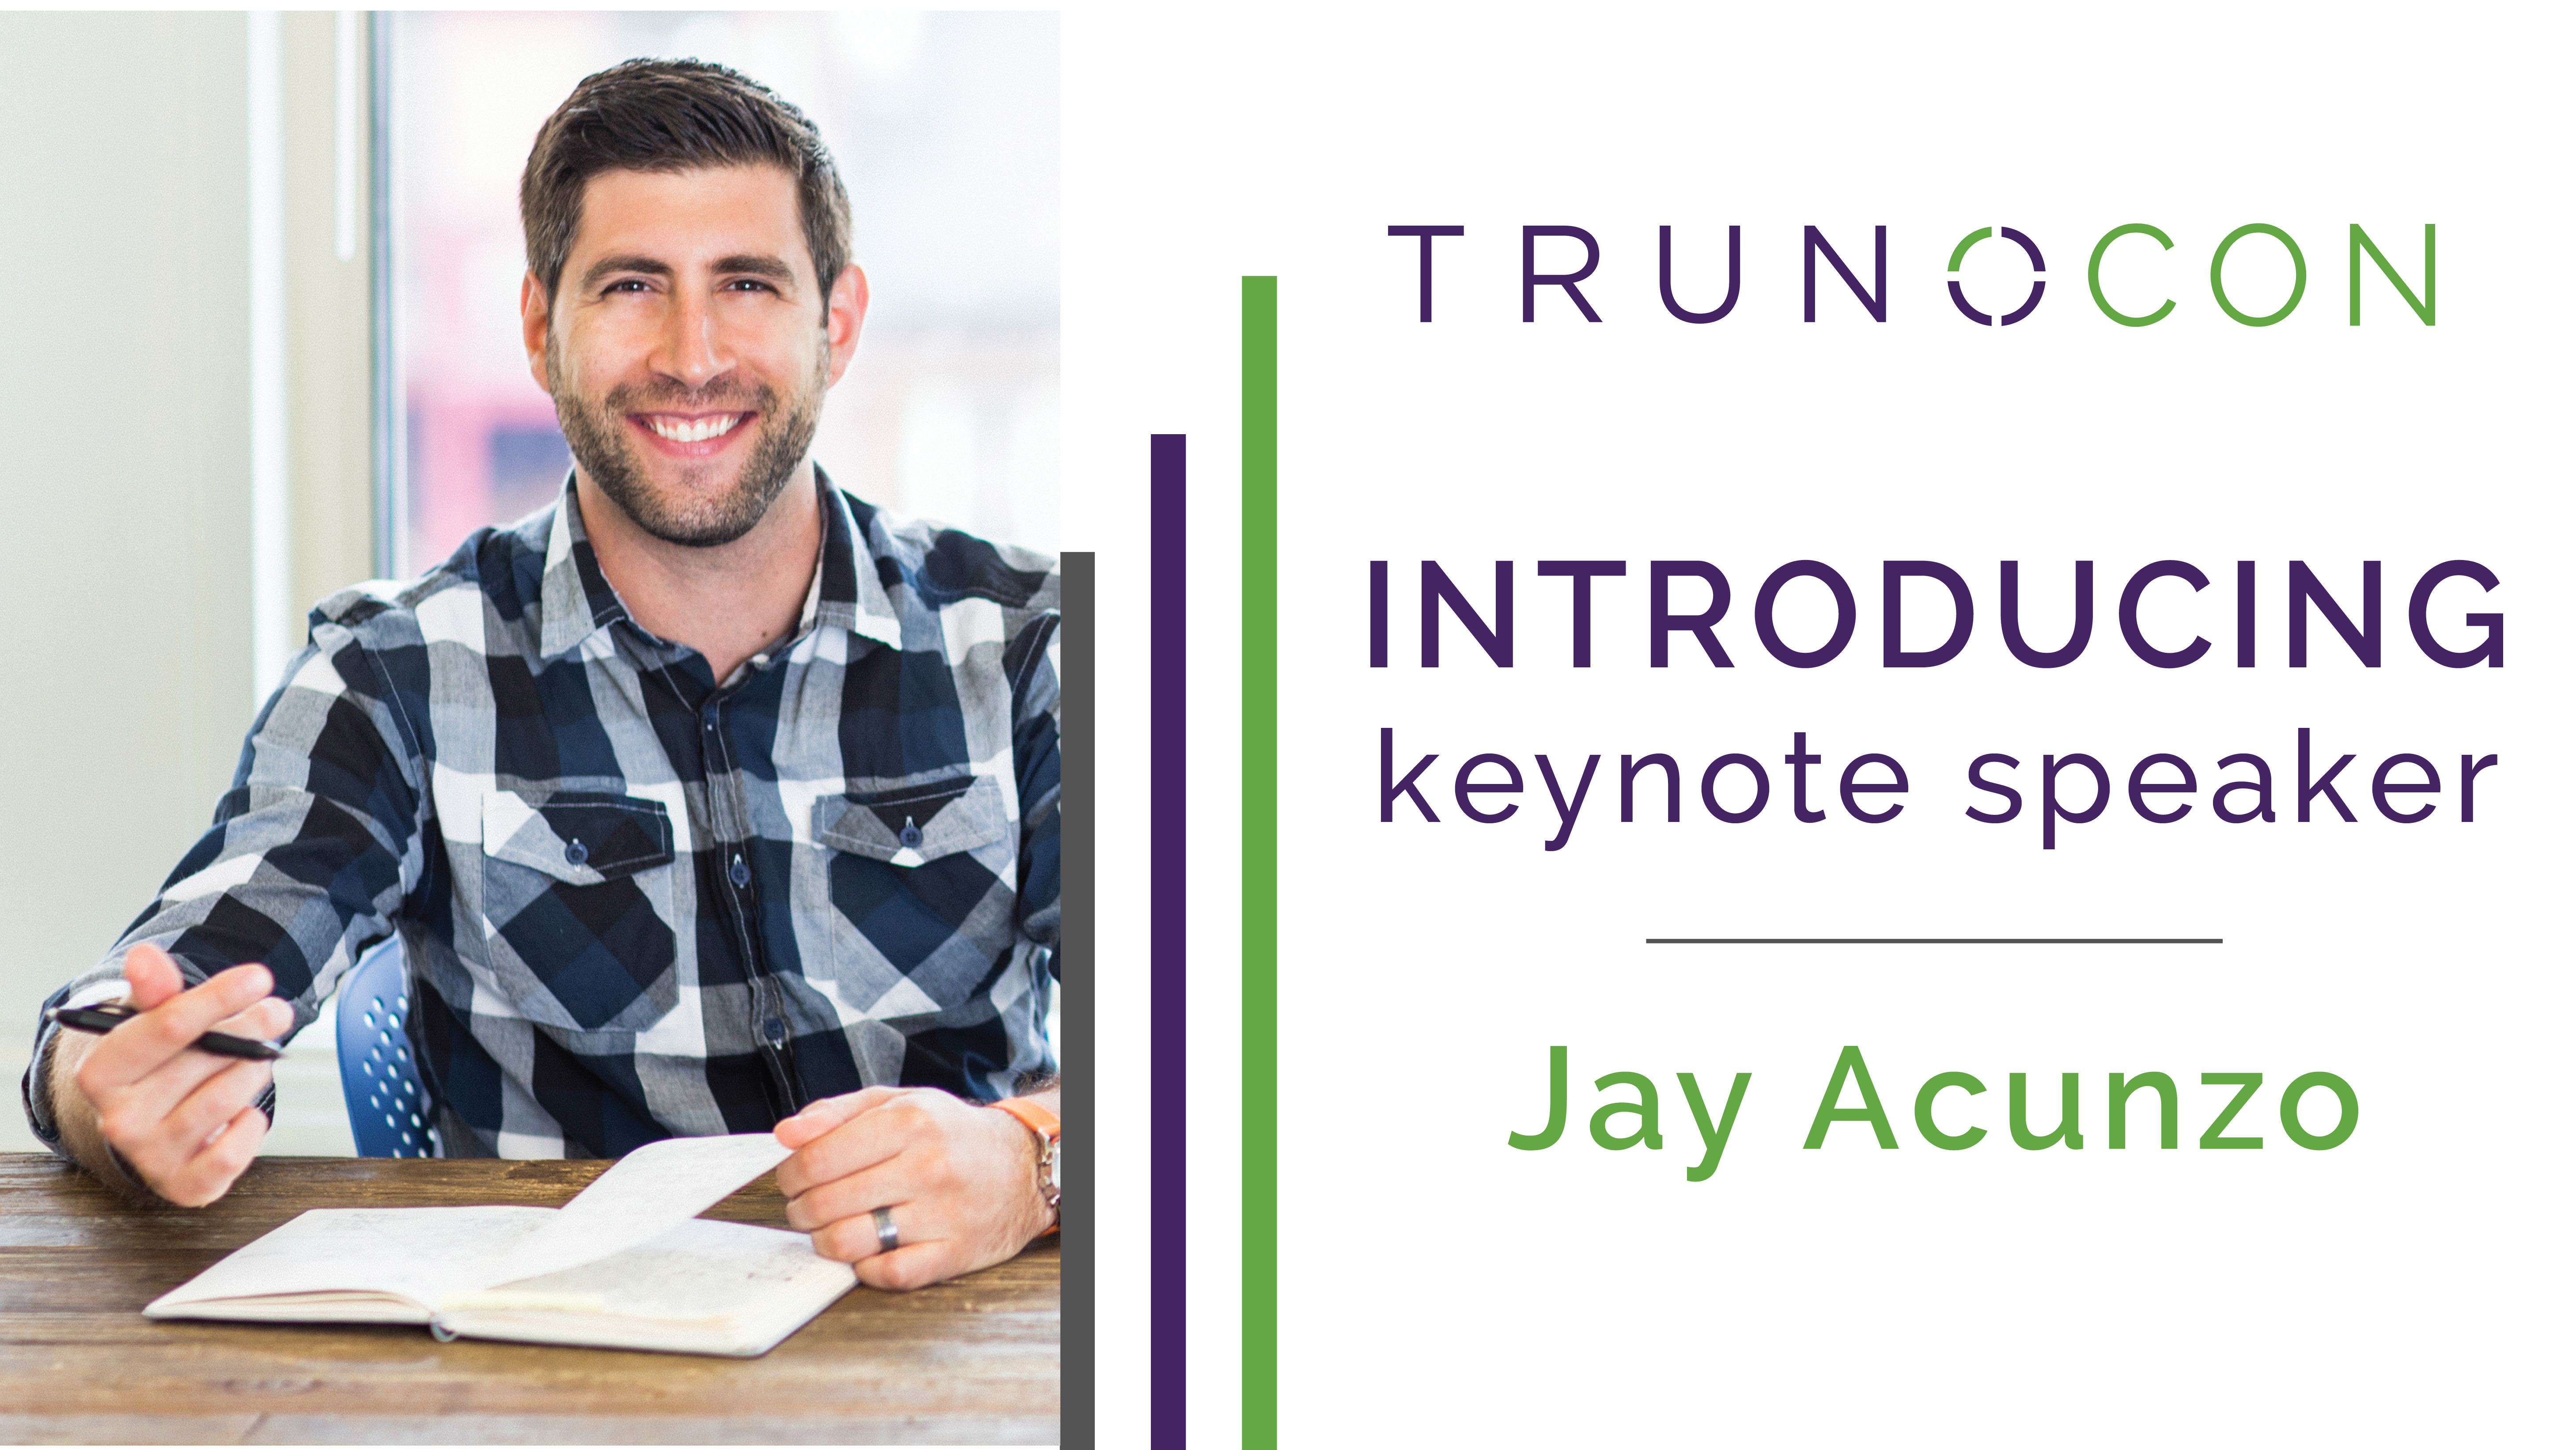 See you at TRUNOCON 19! (Jay Acunzo, Keynote Speaker)